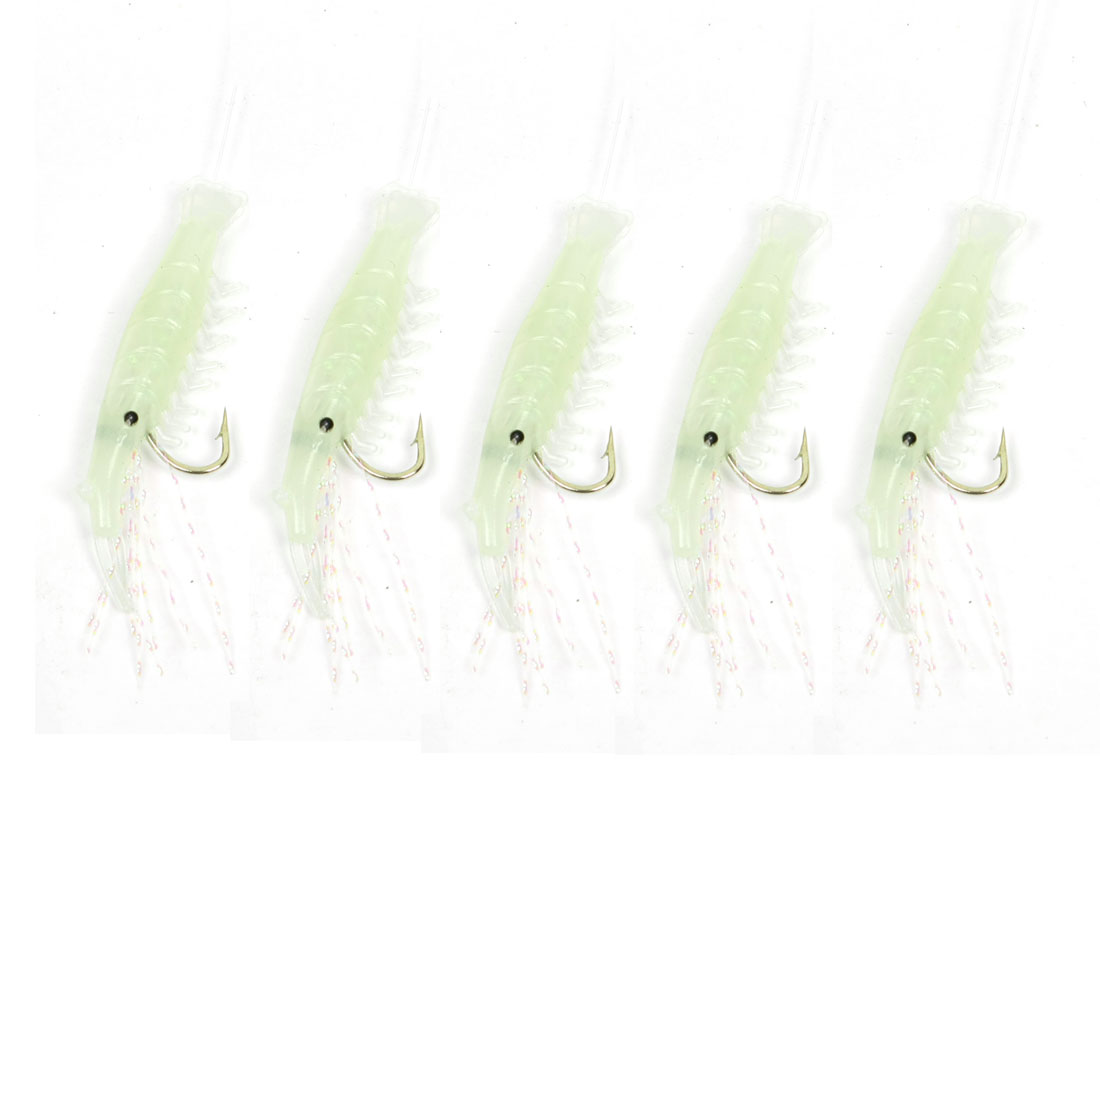 5 pcs Soft Silicone Shrimps Baits w Hook Imitation Lure Light Green